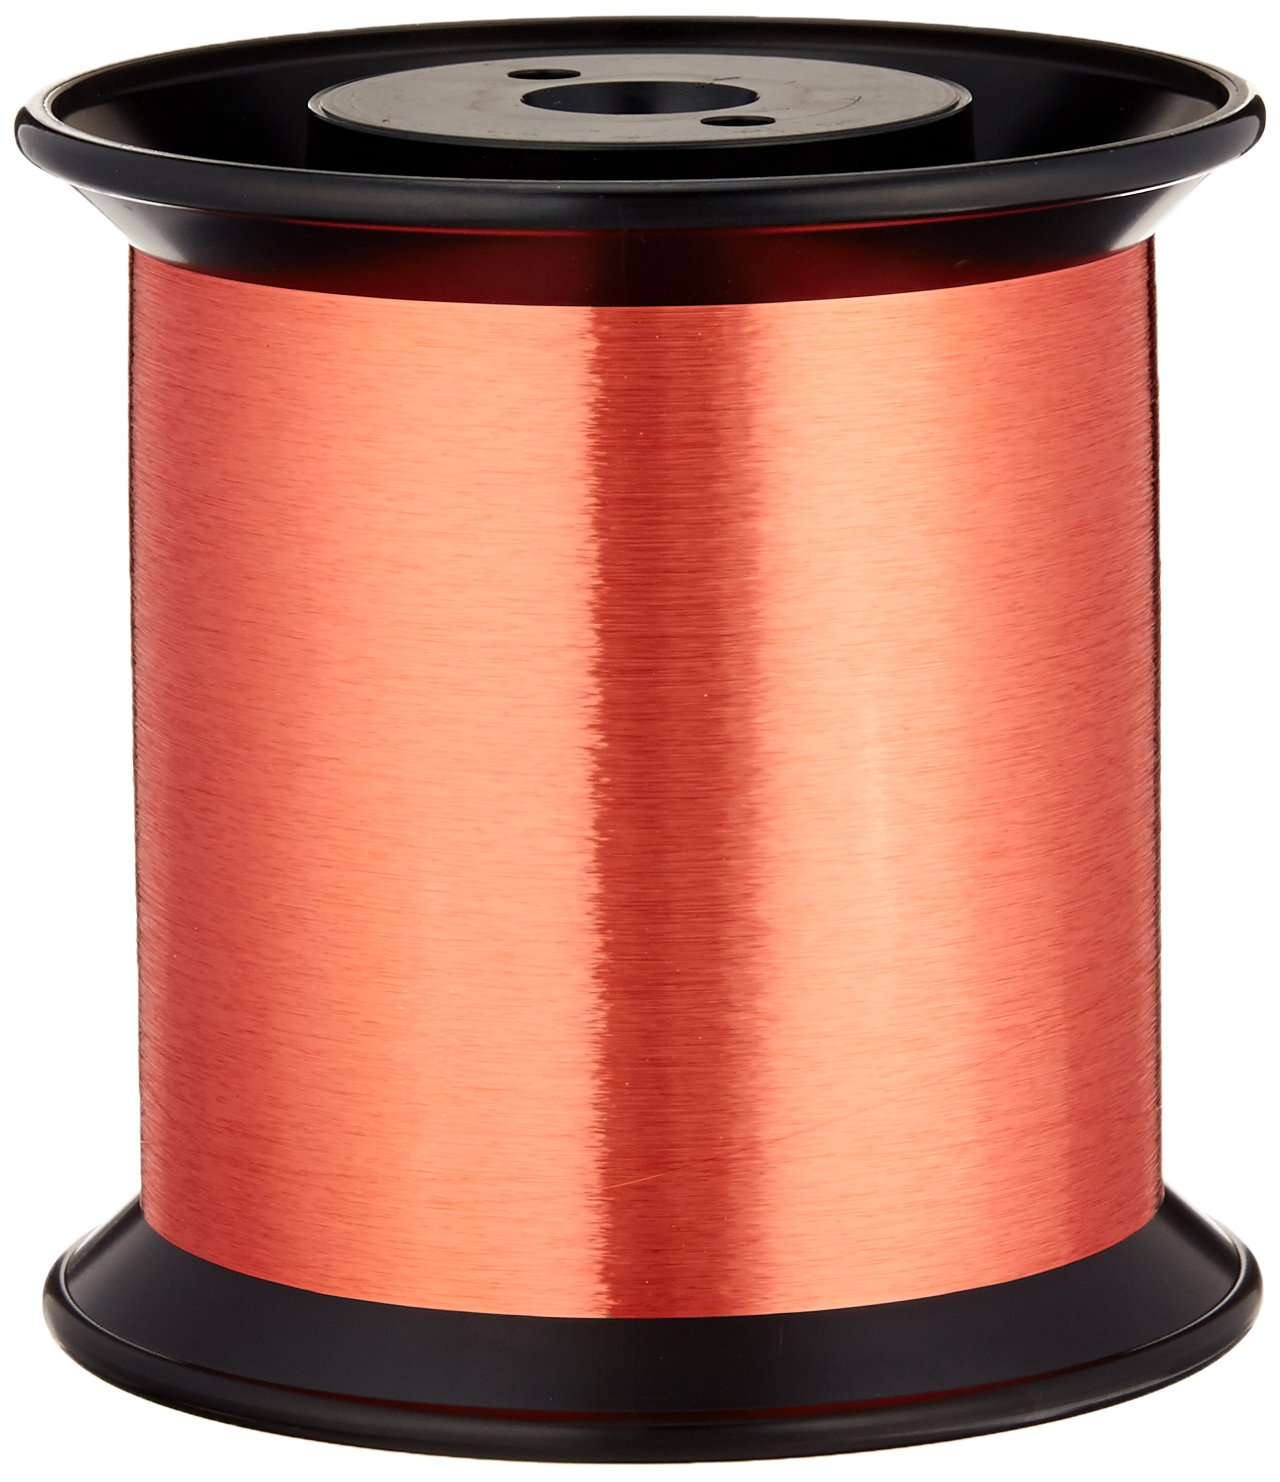 Remington Industries 43SNSR 43 AWG Magnet Wire, Enameled Copper Wire, 0.0024'' Diameter, 330460' Length, Red